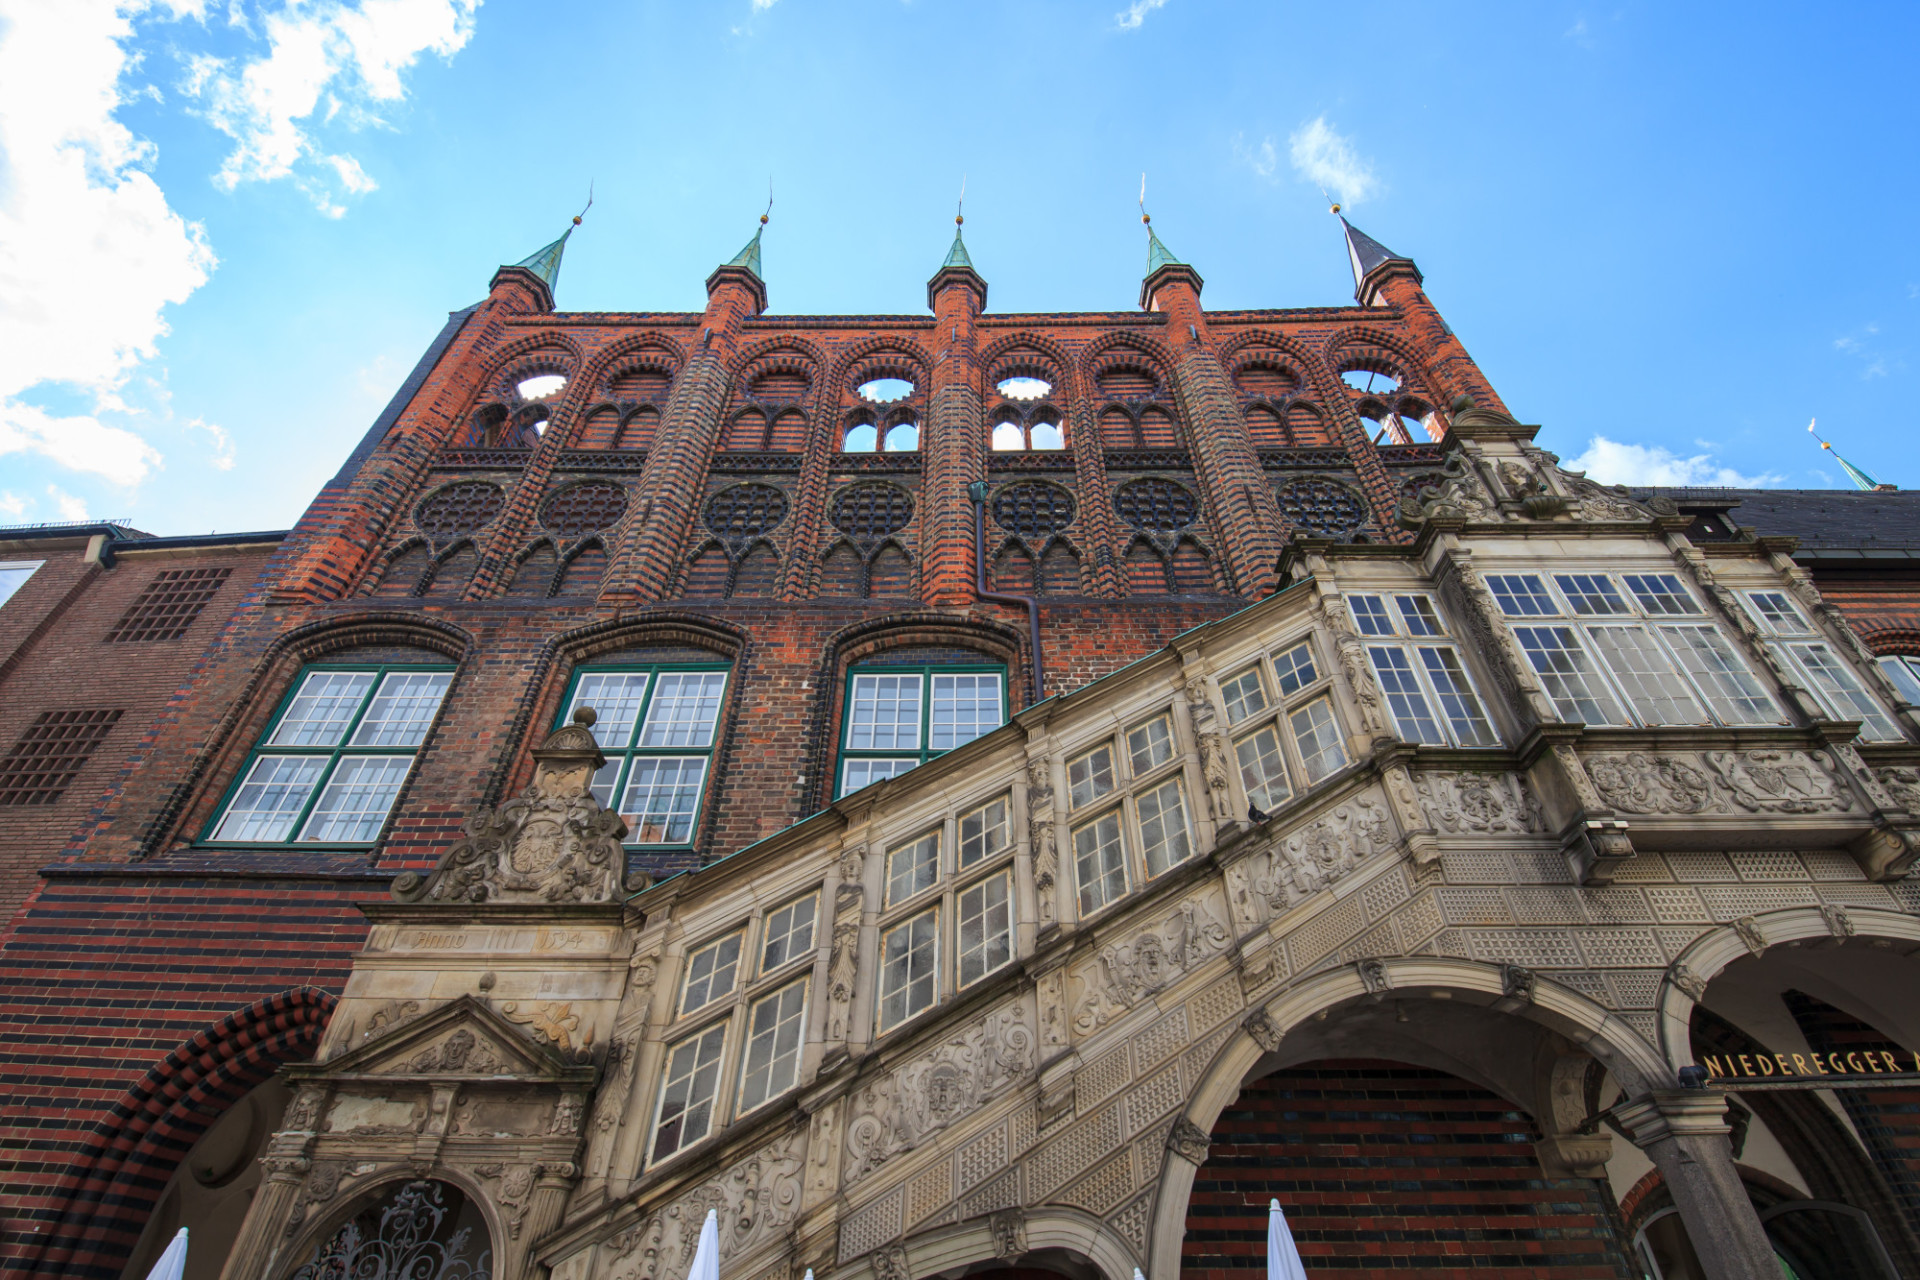 Unique historical town hall in Lübeck